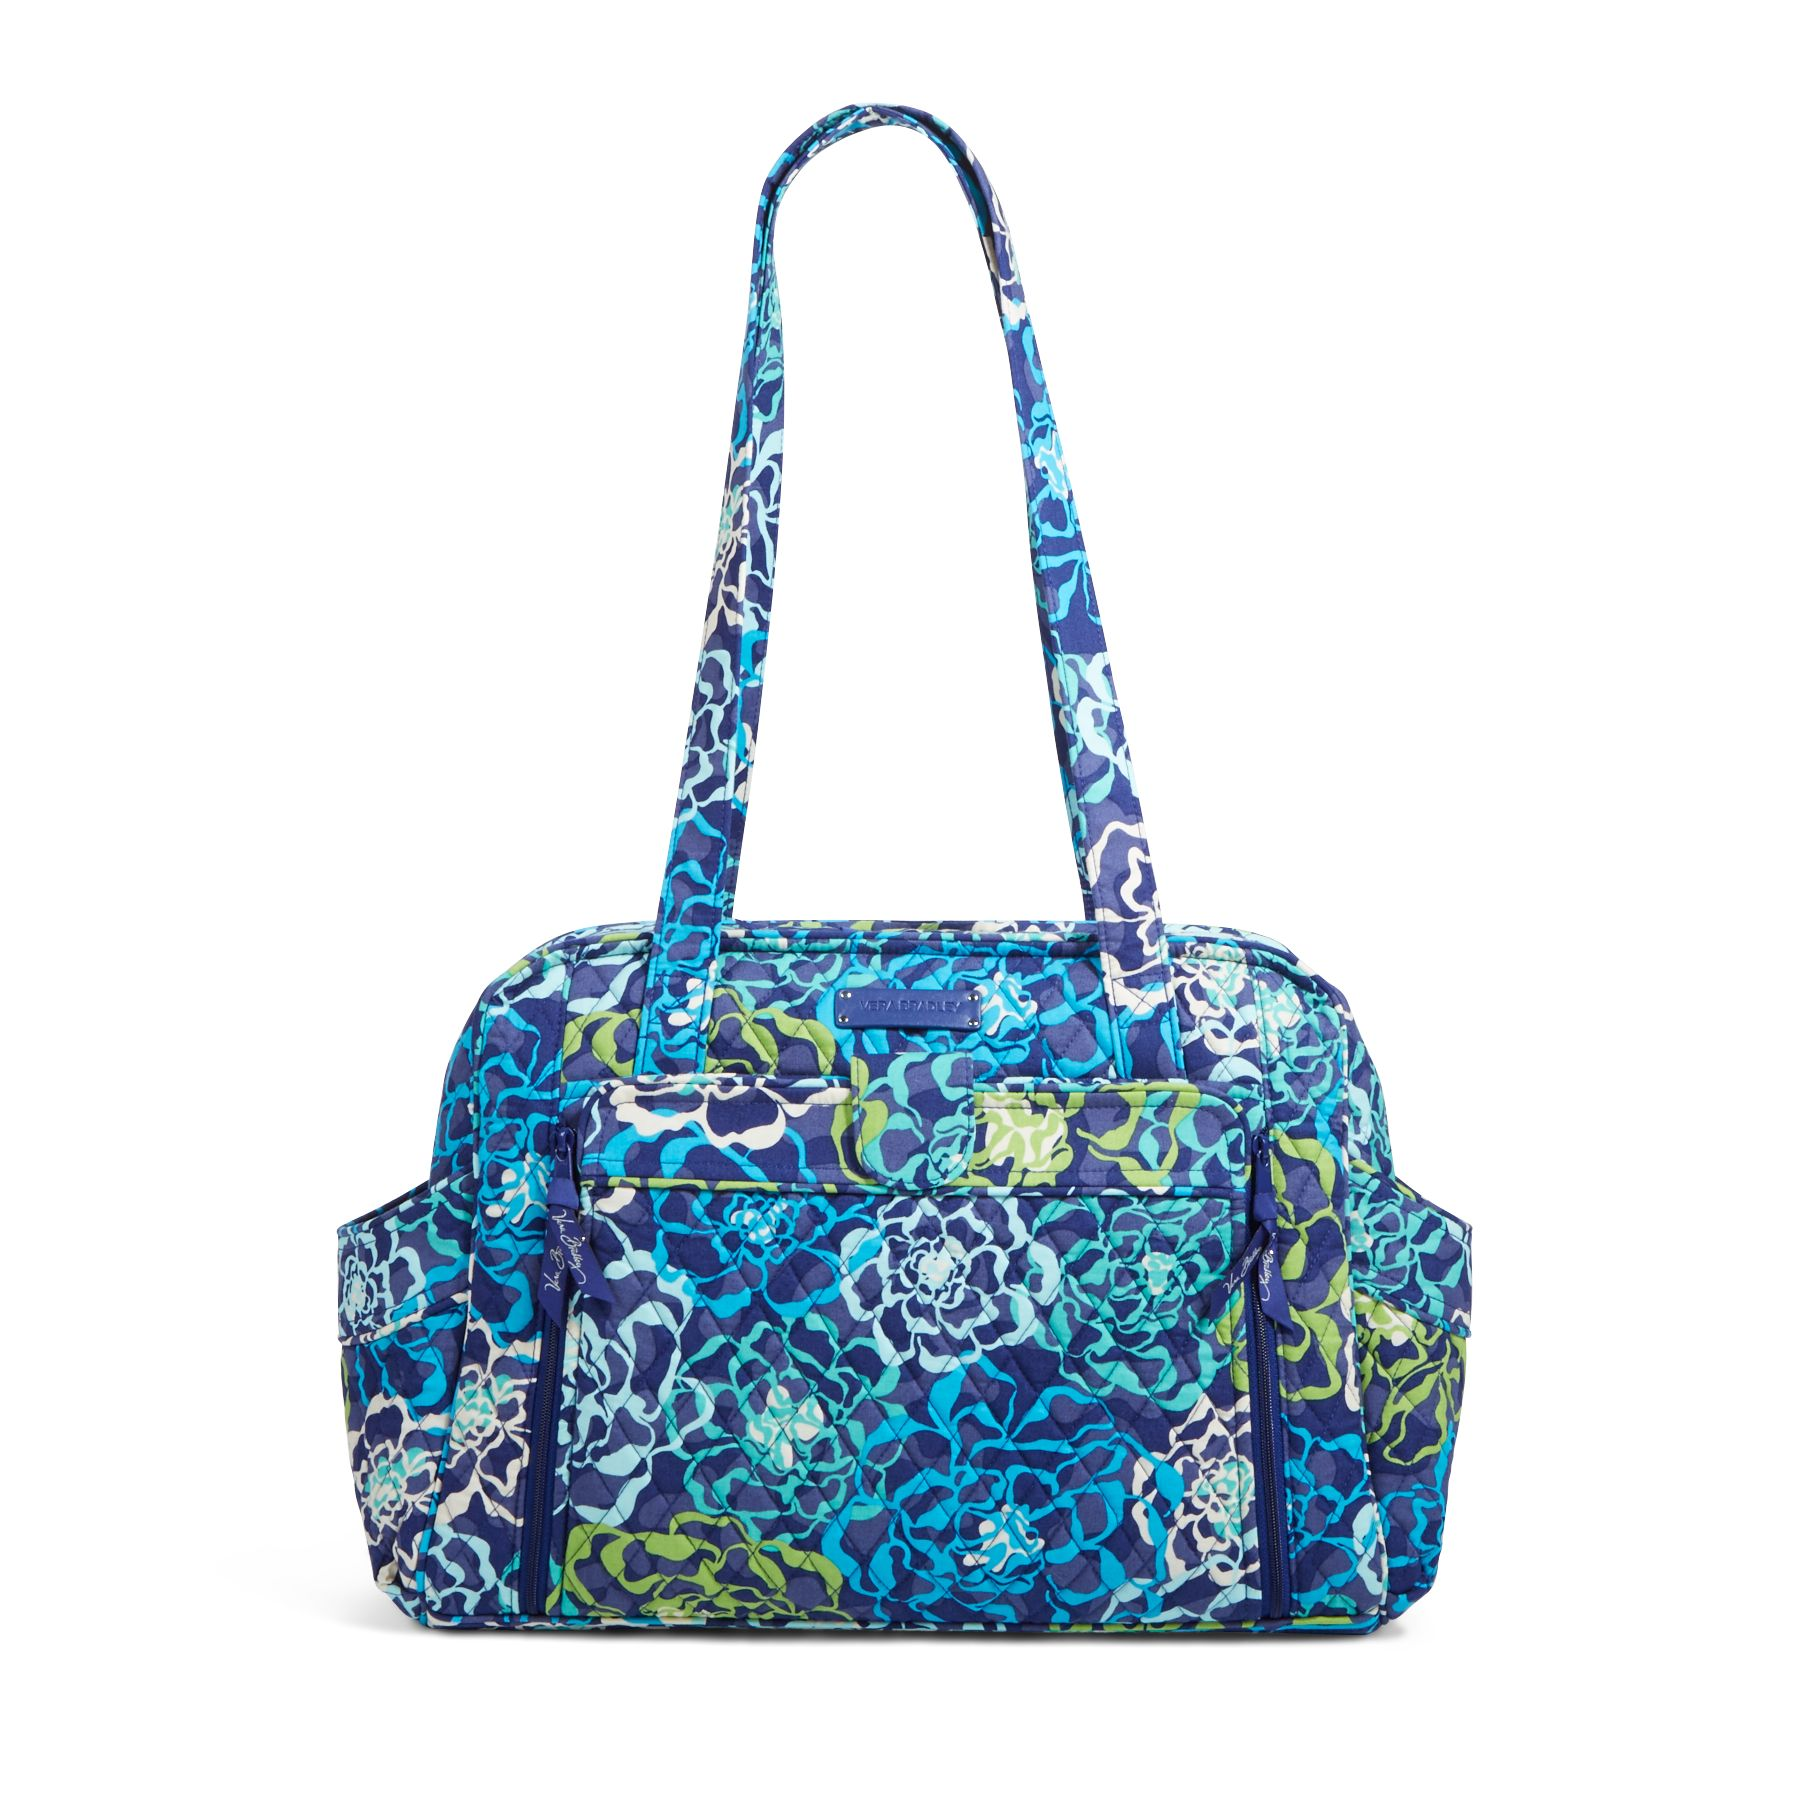 Vera Bradley Stroll Around Baby Bag in Katalina Blues